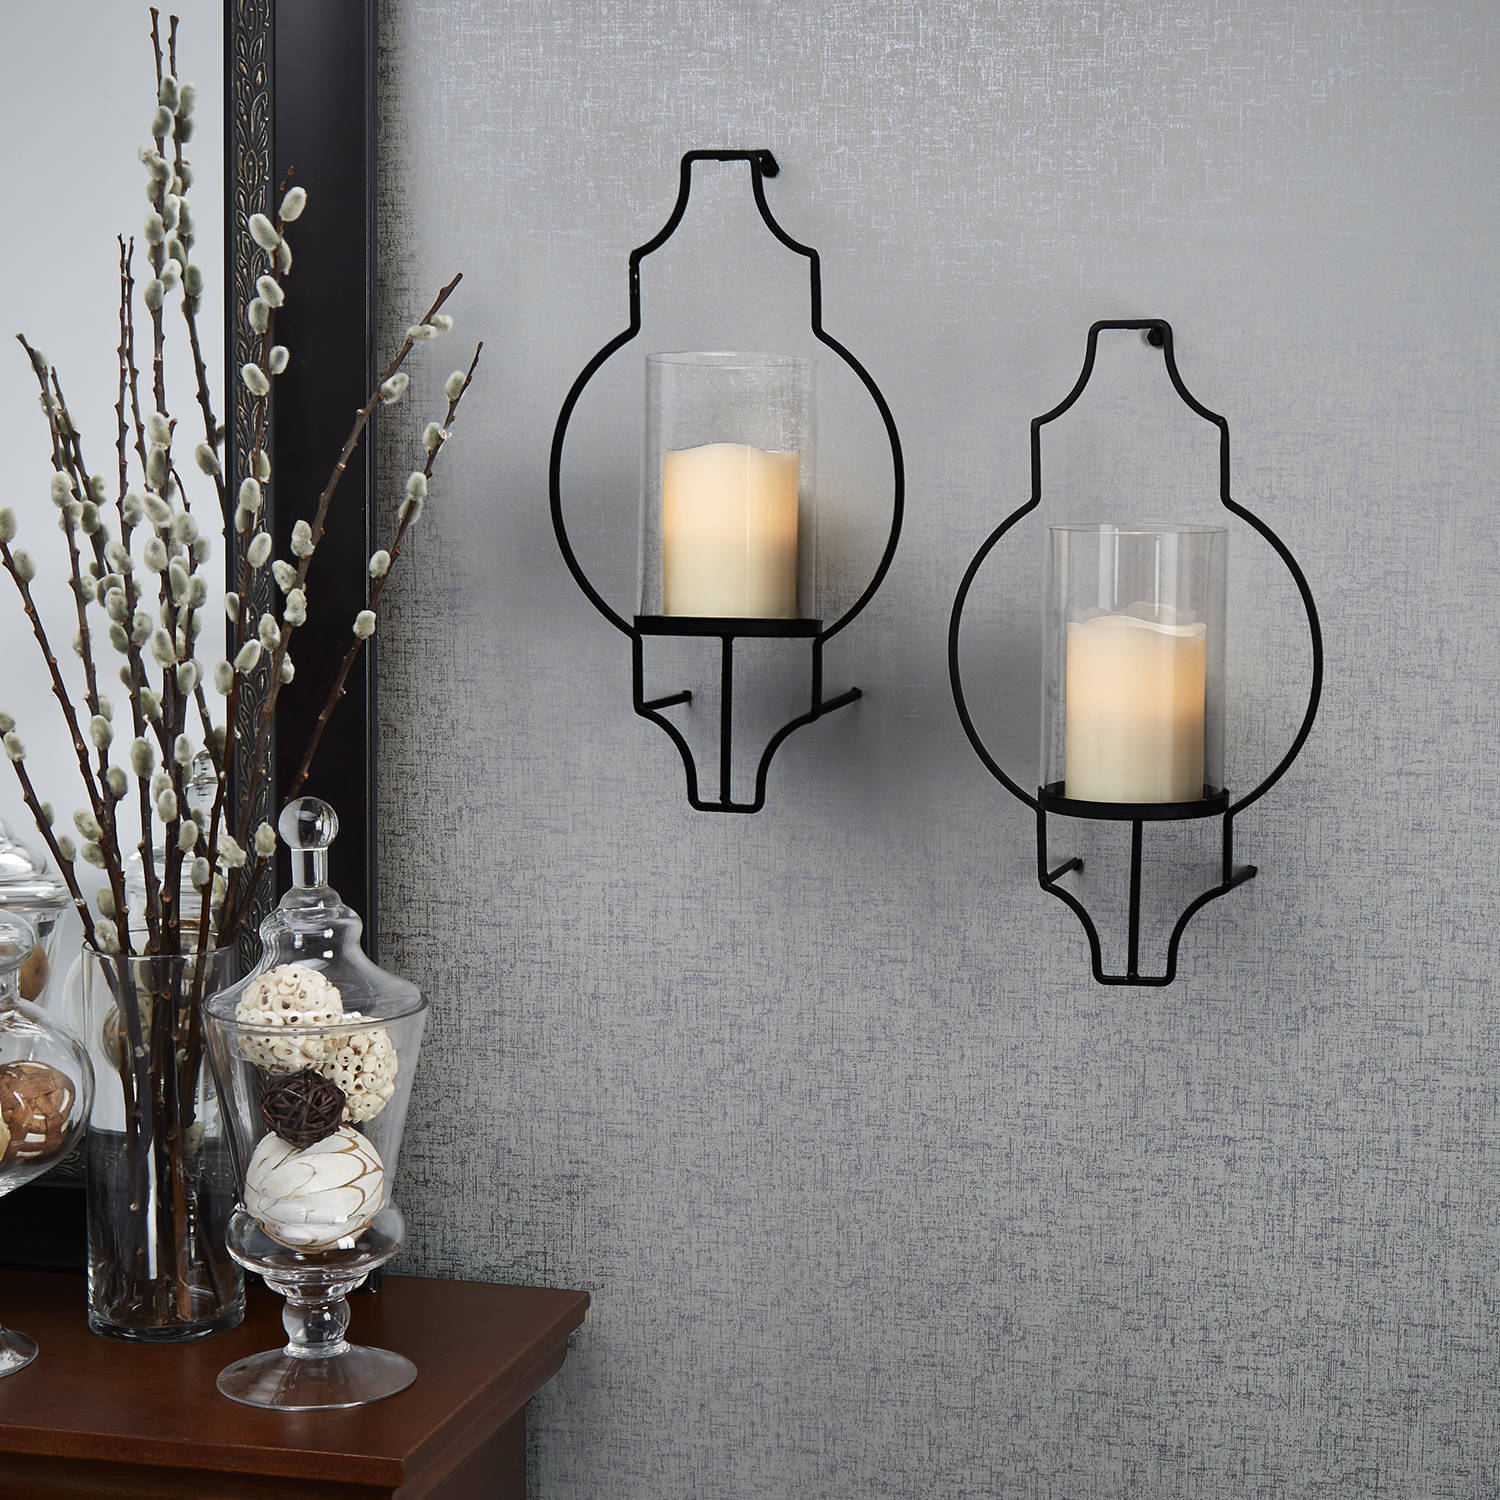 Wall Sconce With Glass Hurricane : Lights.com Flameless Candles Pillar Candles Hurricane Glass Flameless Candle Wall Sconce ...